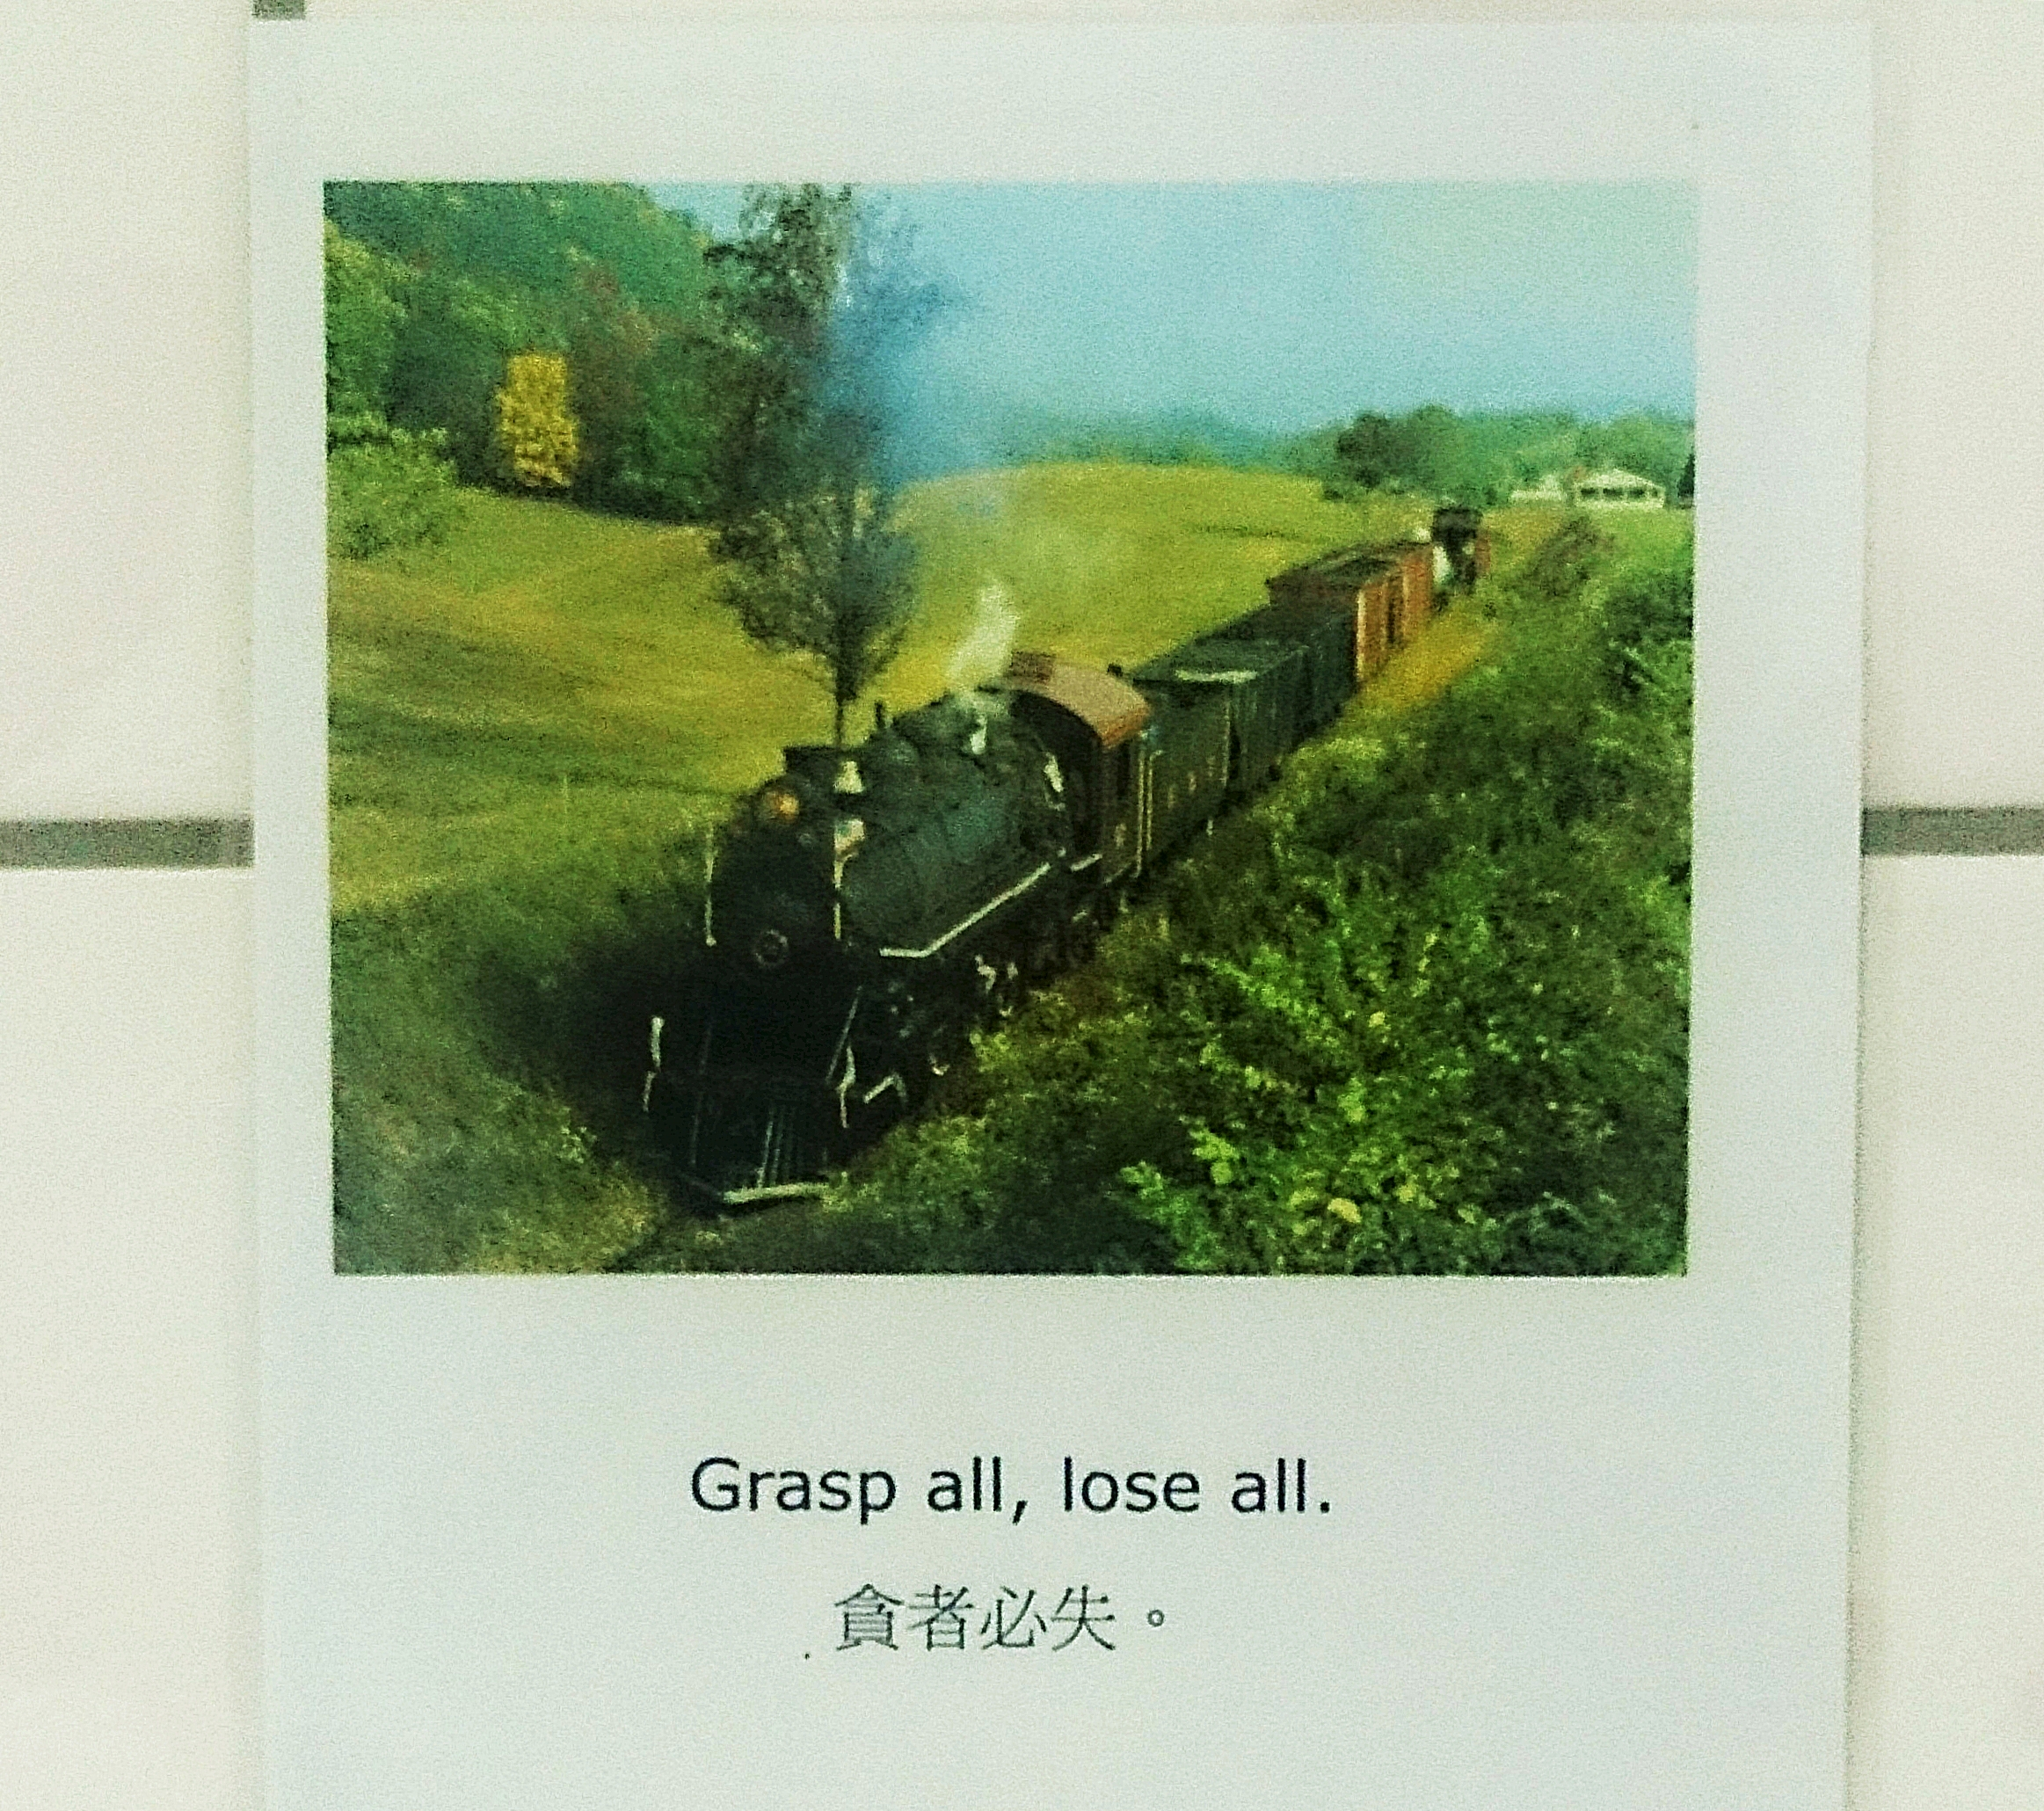 This steam train perfectly embodies this saying...